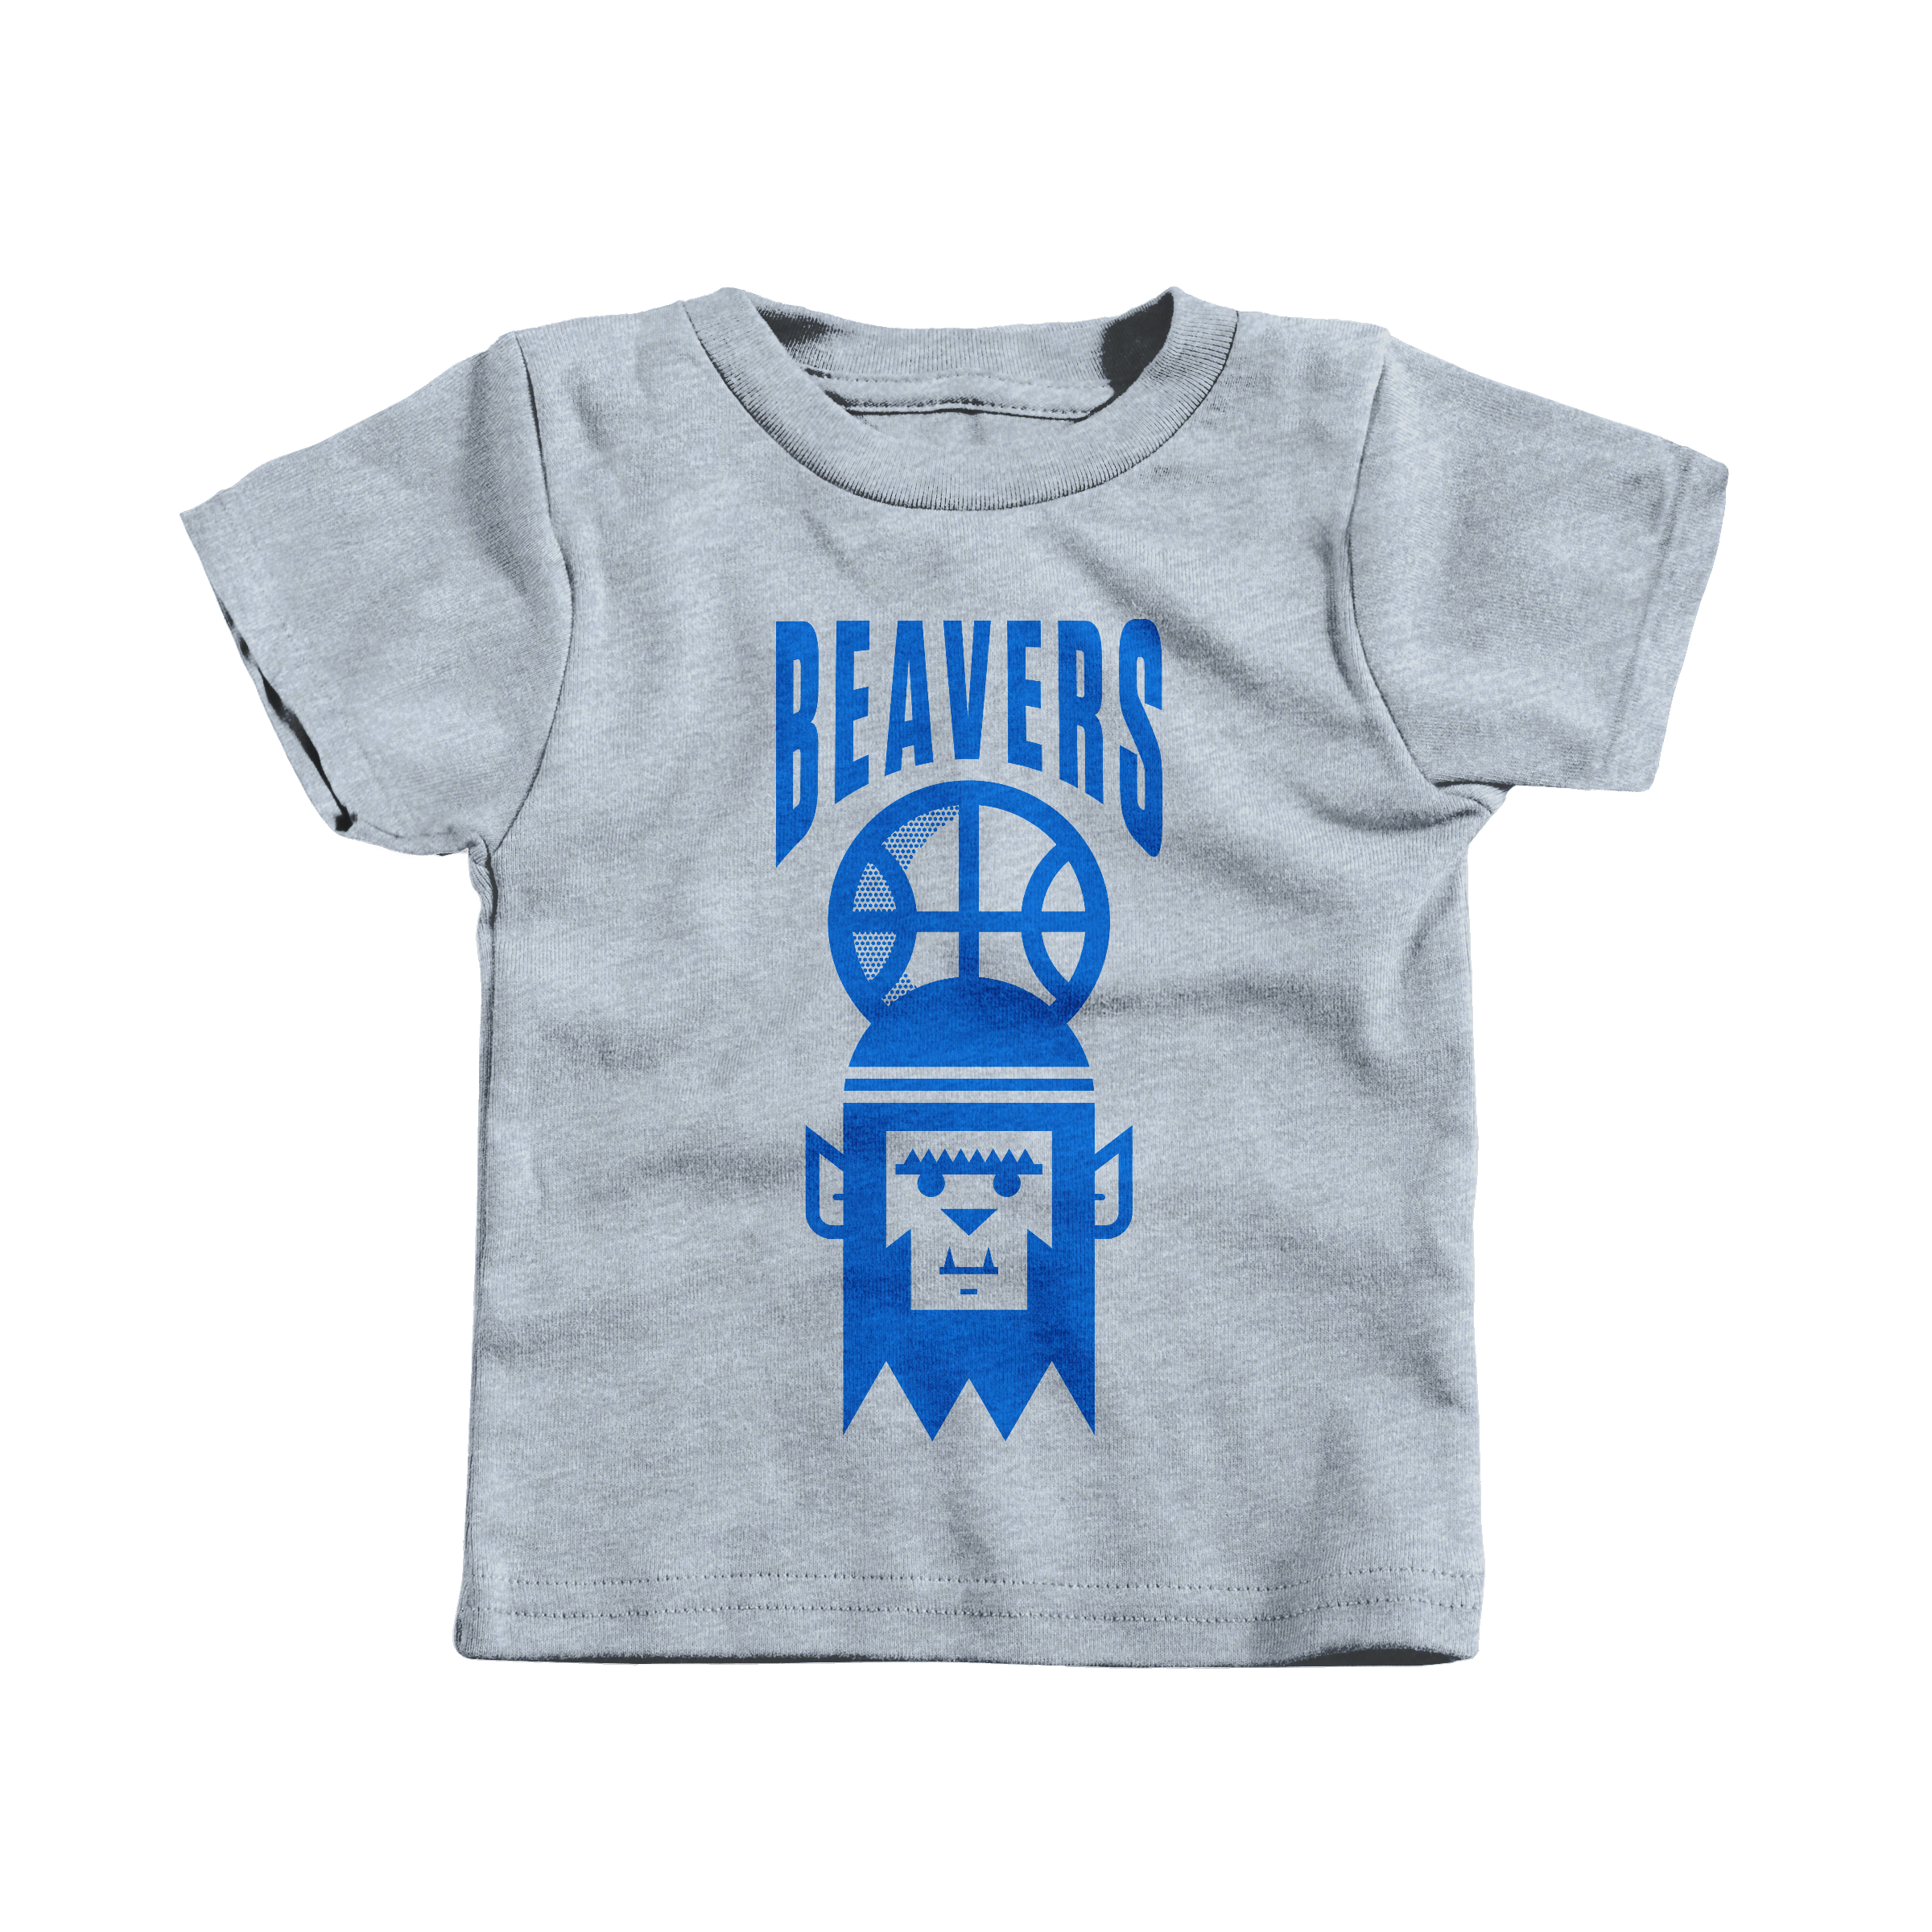 Go Beavers Heather Grey (T-Shirt)